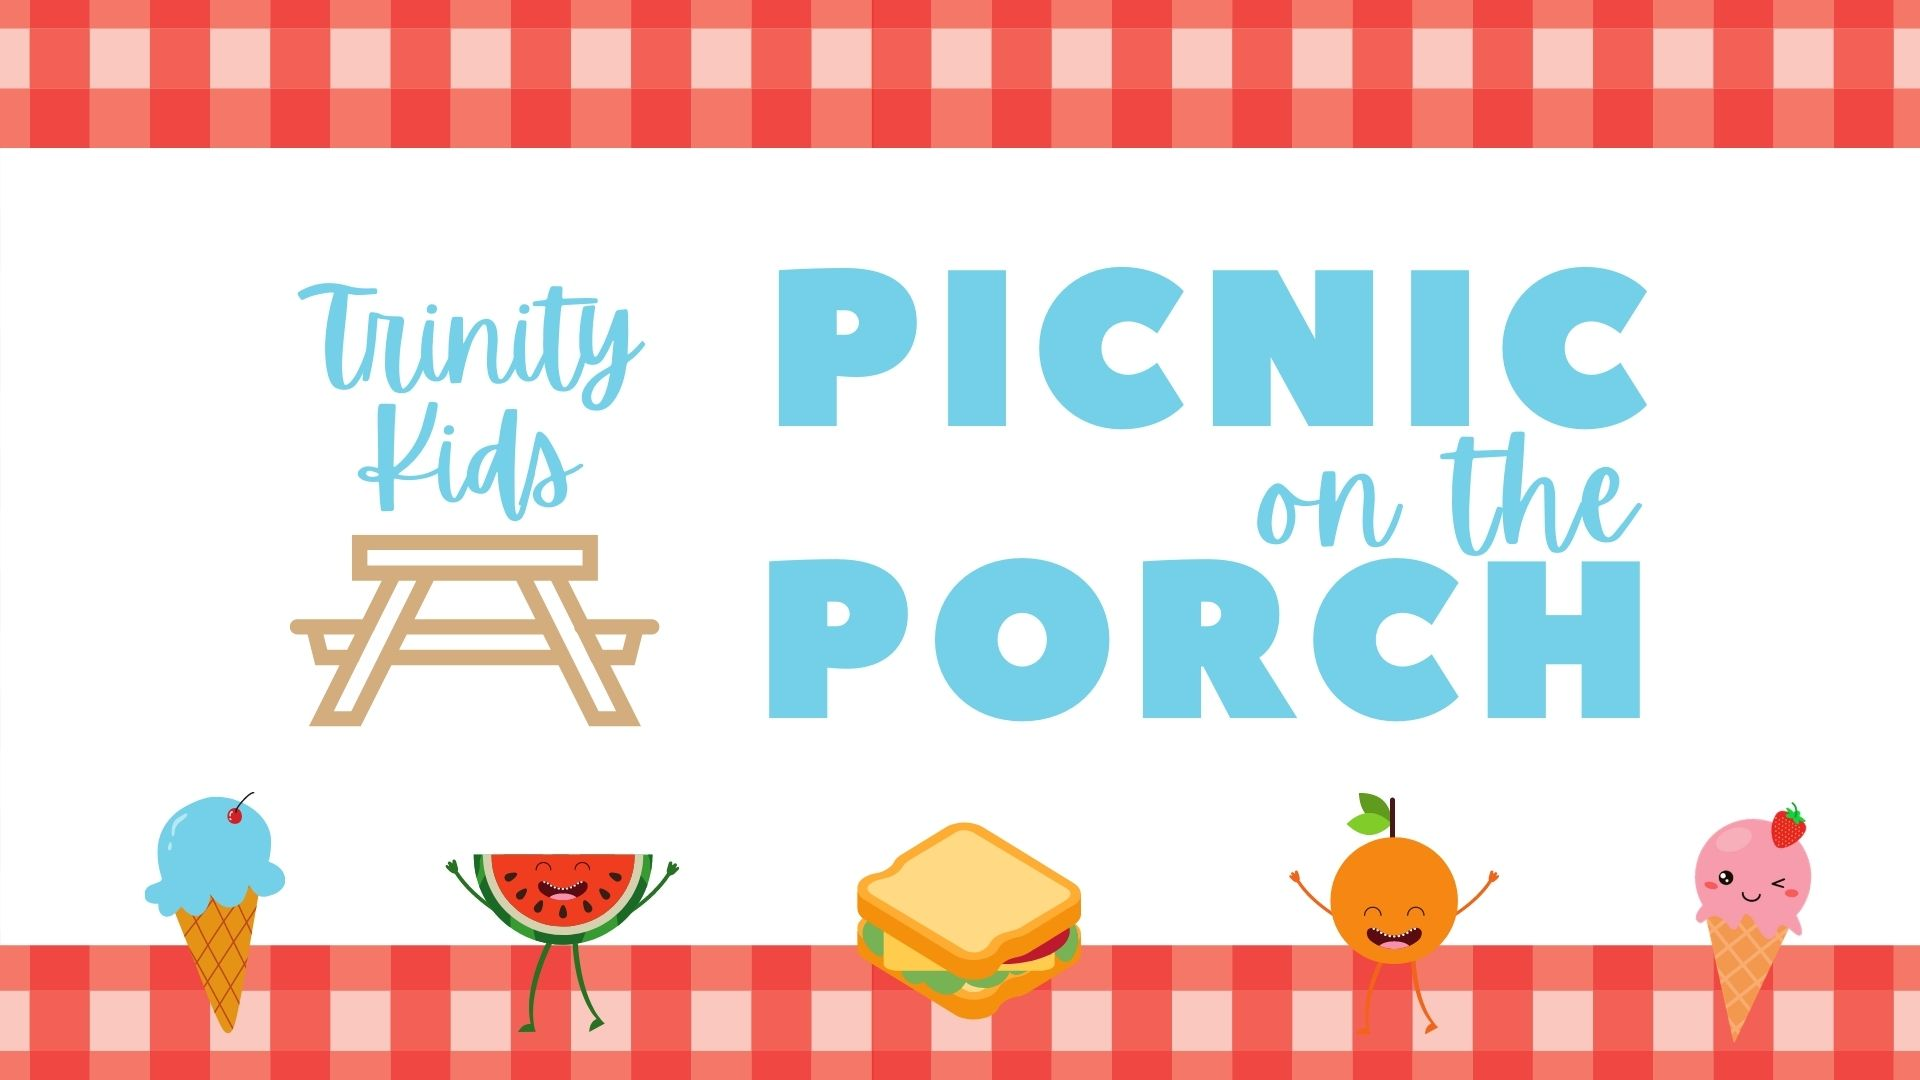 Kids Picnic on the Porch image